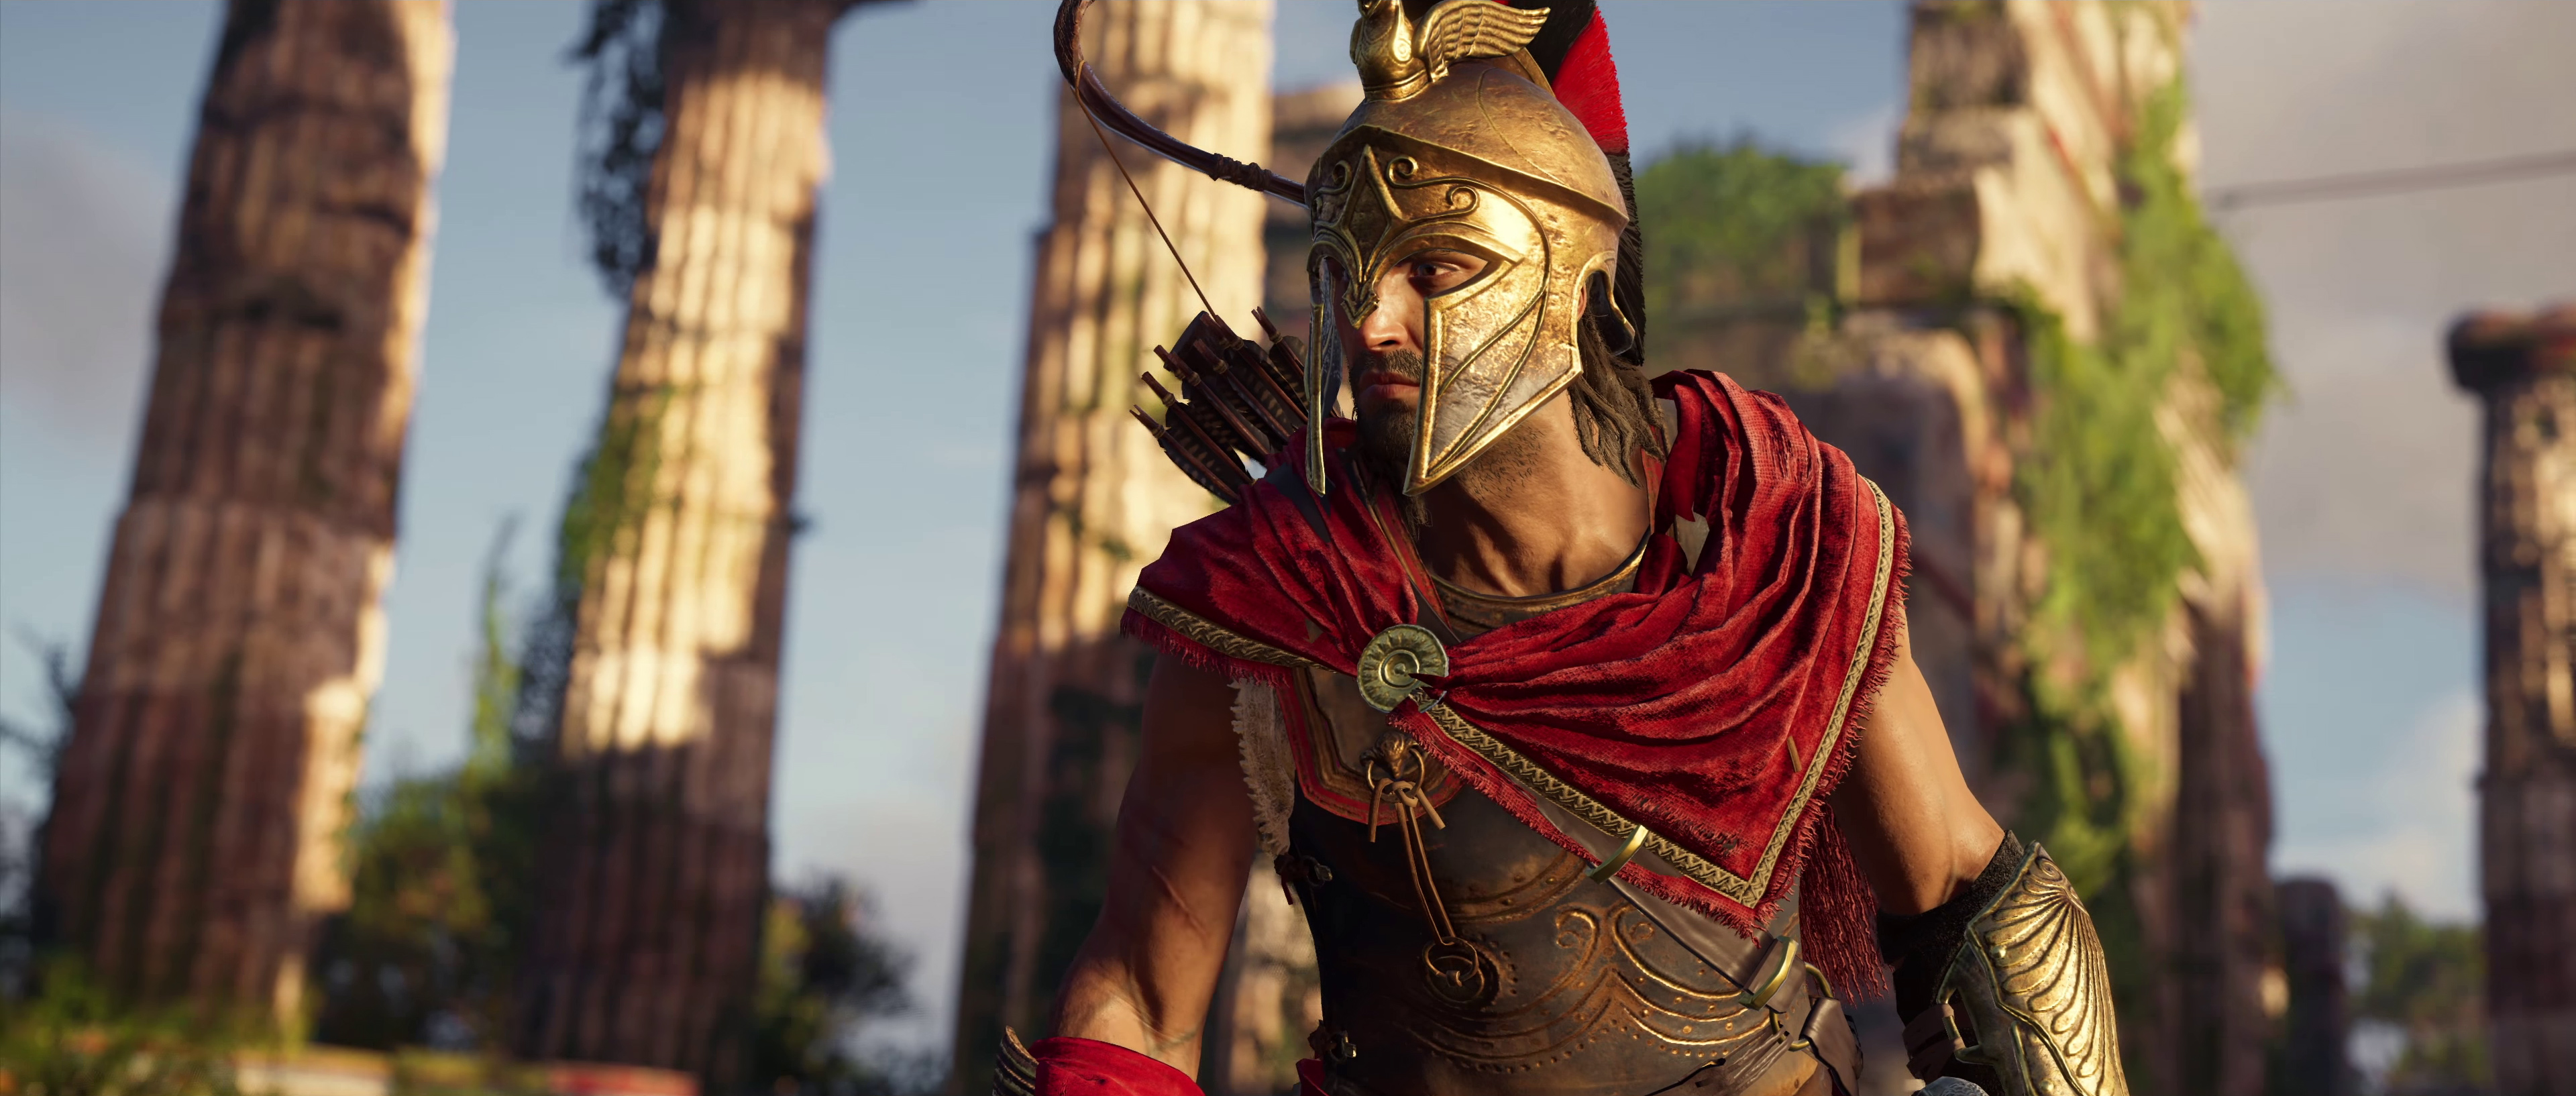 Get free Assassin's Creed Odyssey on PC for testing Google's Project Stream